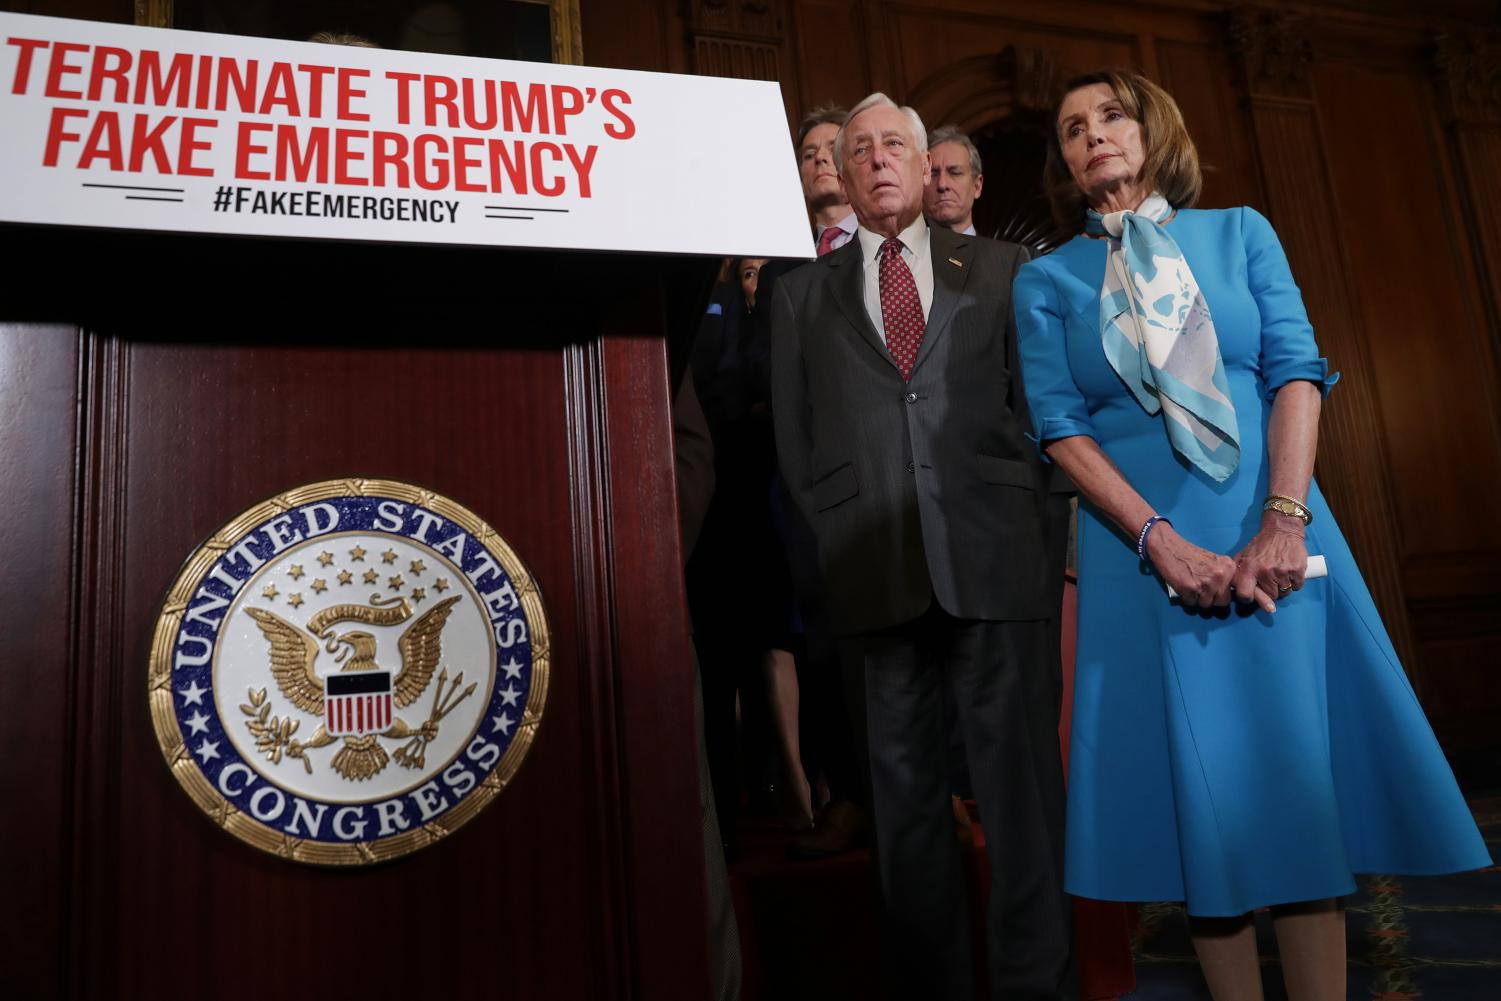 Speaker of the House Nancy Pelosi (D-CA) (R) is joined by House Majority Leader Steny Hoyer (D-MD) and other House Democrats for a news conference on the privileged resolution to terminate President Donald Trump's emergency declaration Feb. 25, in Washington, D.C. The House passed a resolution to abolish Trump's declaration of a national emergency to build a U.S.- Mexico border wall.